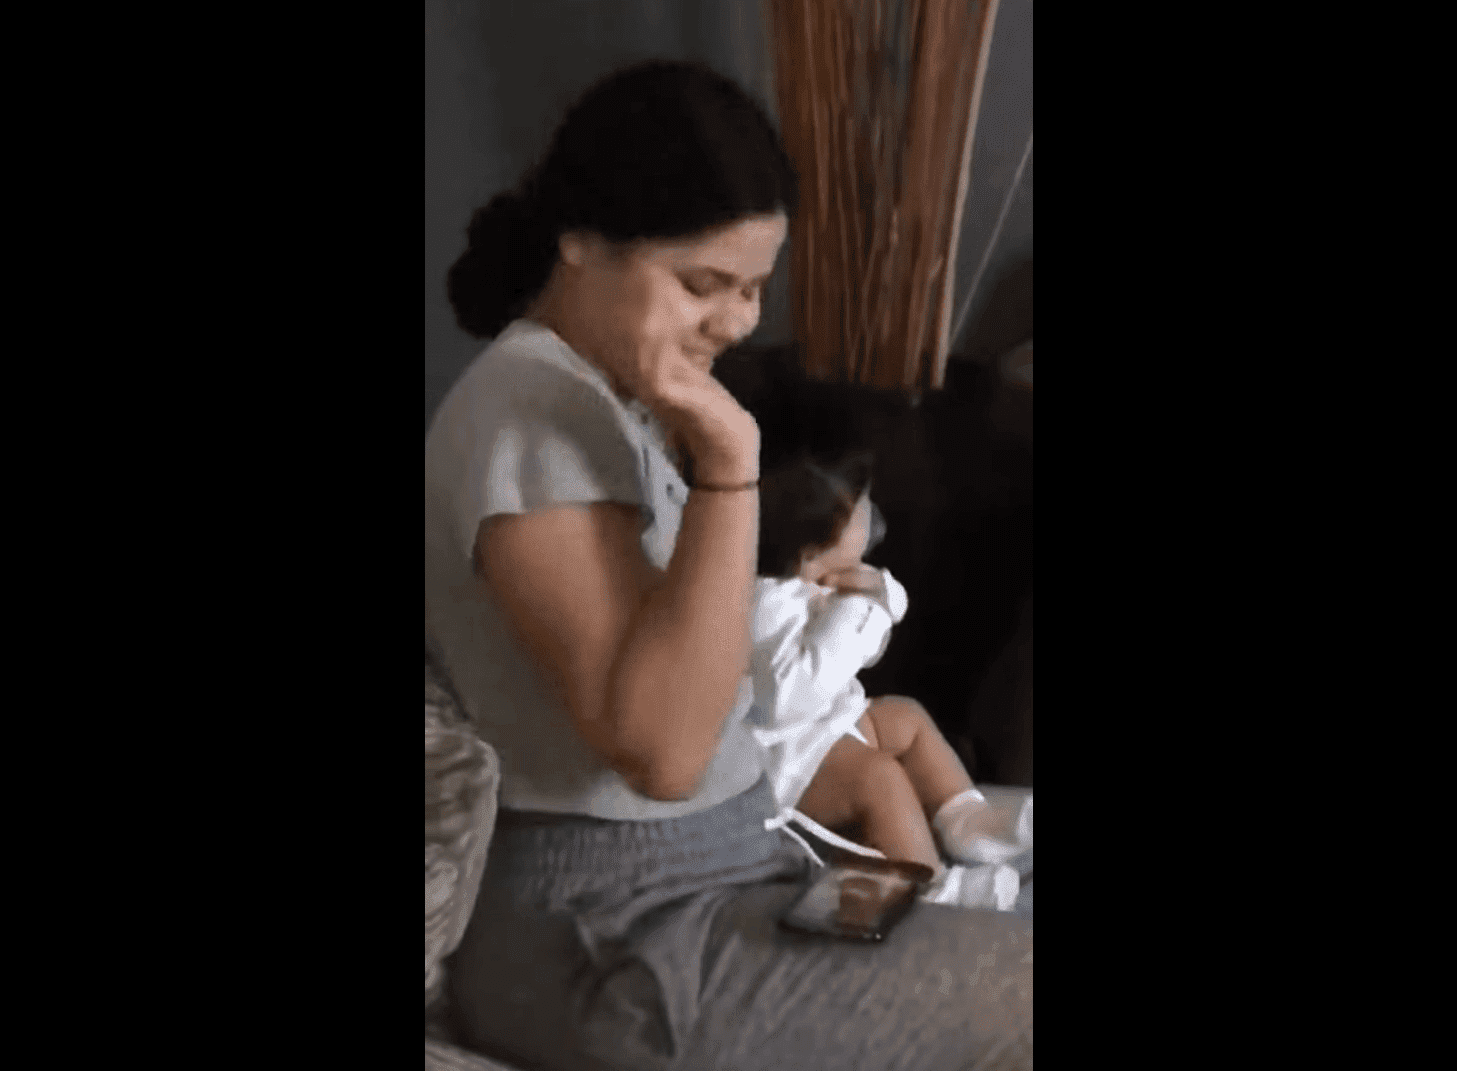 Frau mit Baby - Quelle: Facebook - JD Videos Oficial